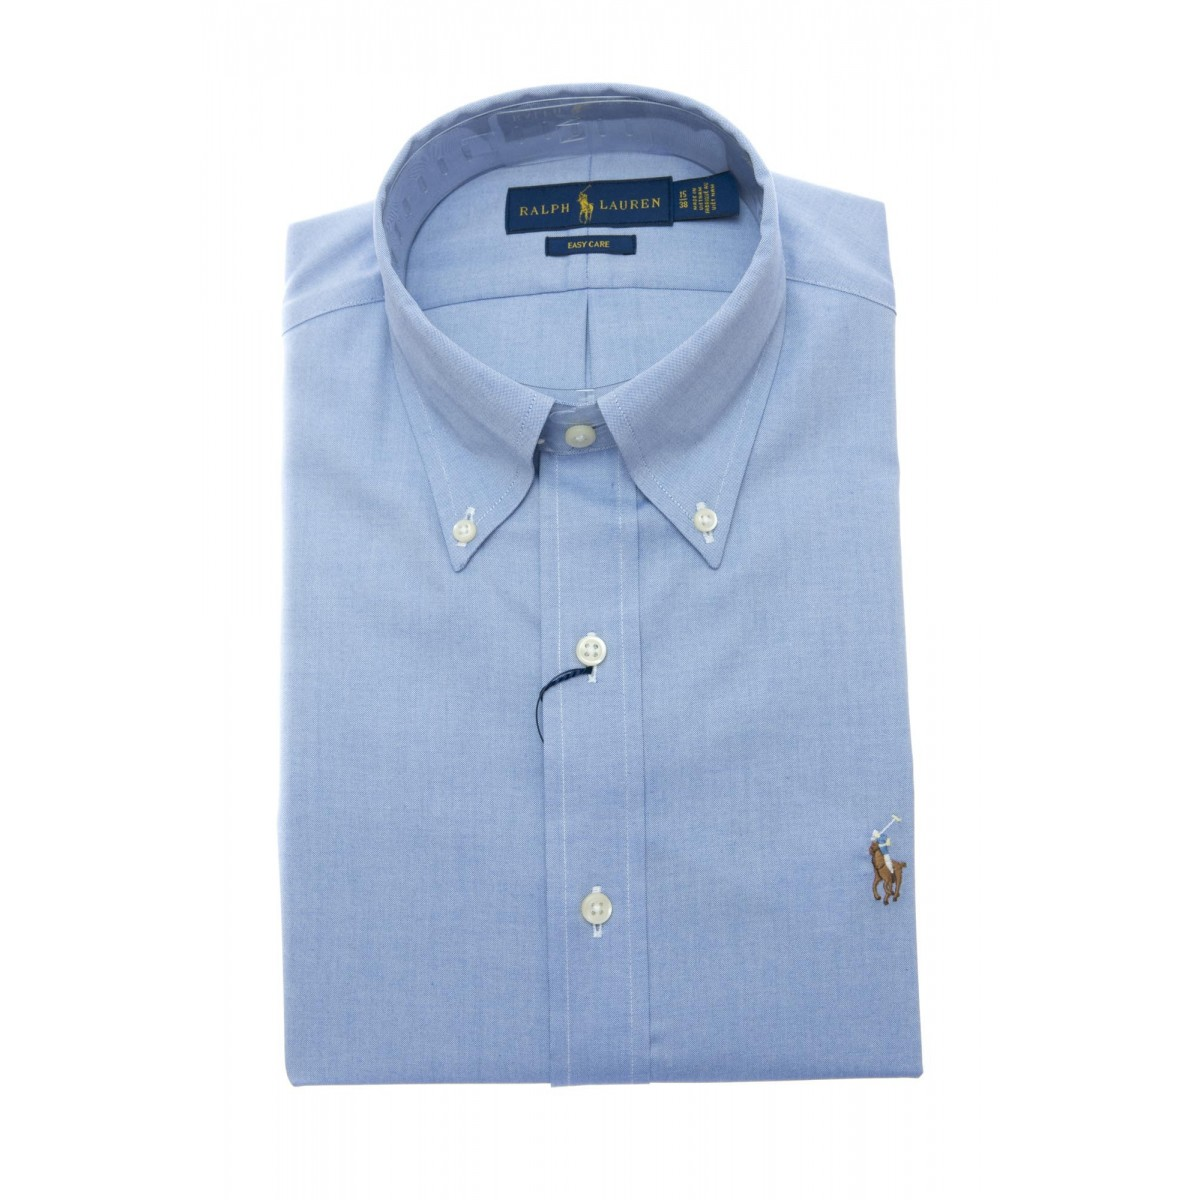 Camicia Uomo- 675619 004 camicia pin point custom fit